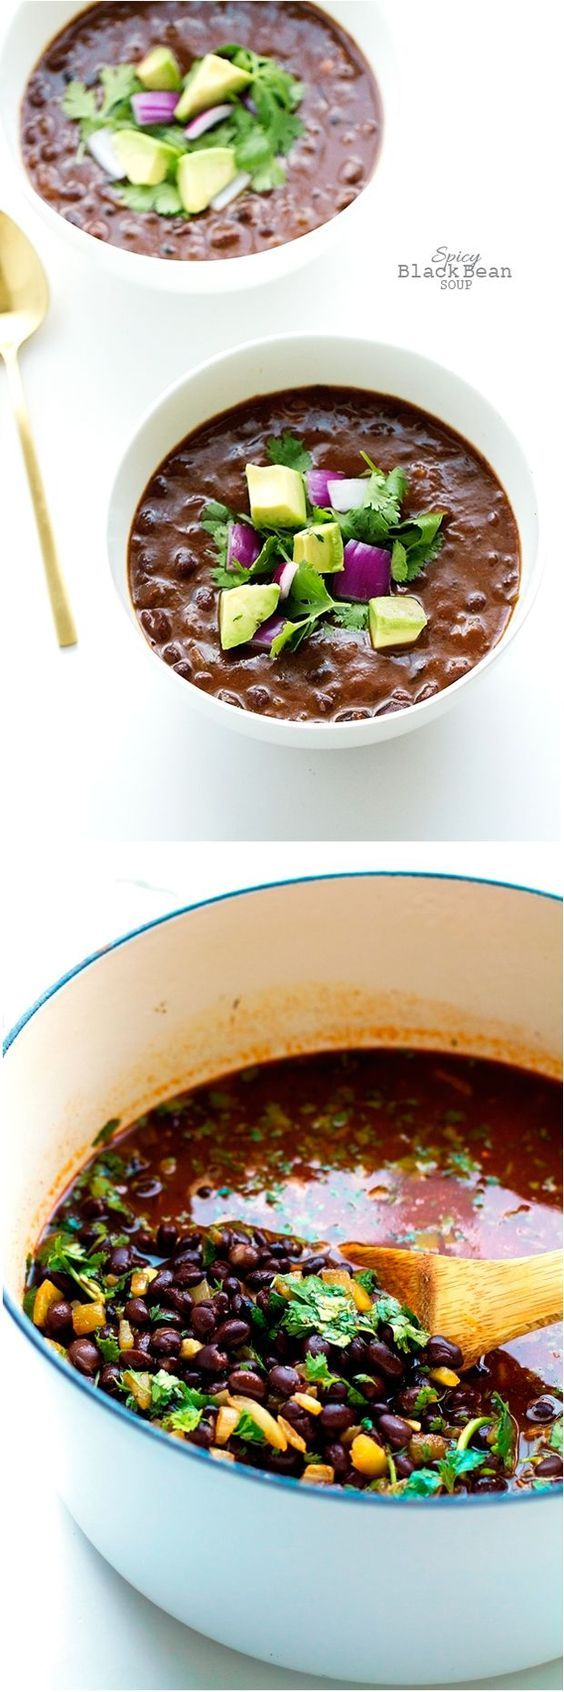 Spicy Black Bean Soup that's vegan and totally delicious! #blackbeansoup #spicyblackbeansoup #blackbeans | http://Littlespicejar.com